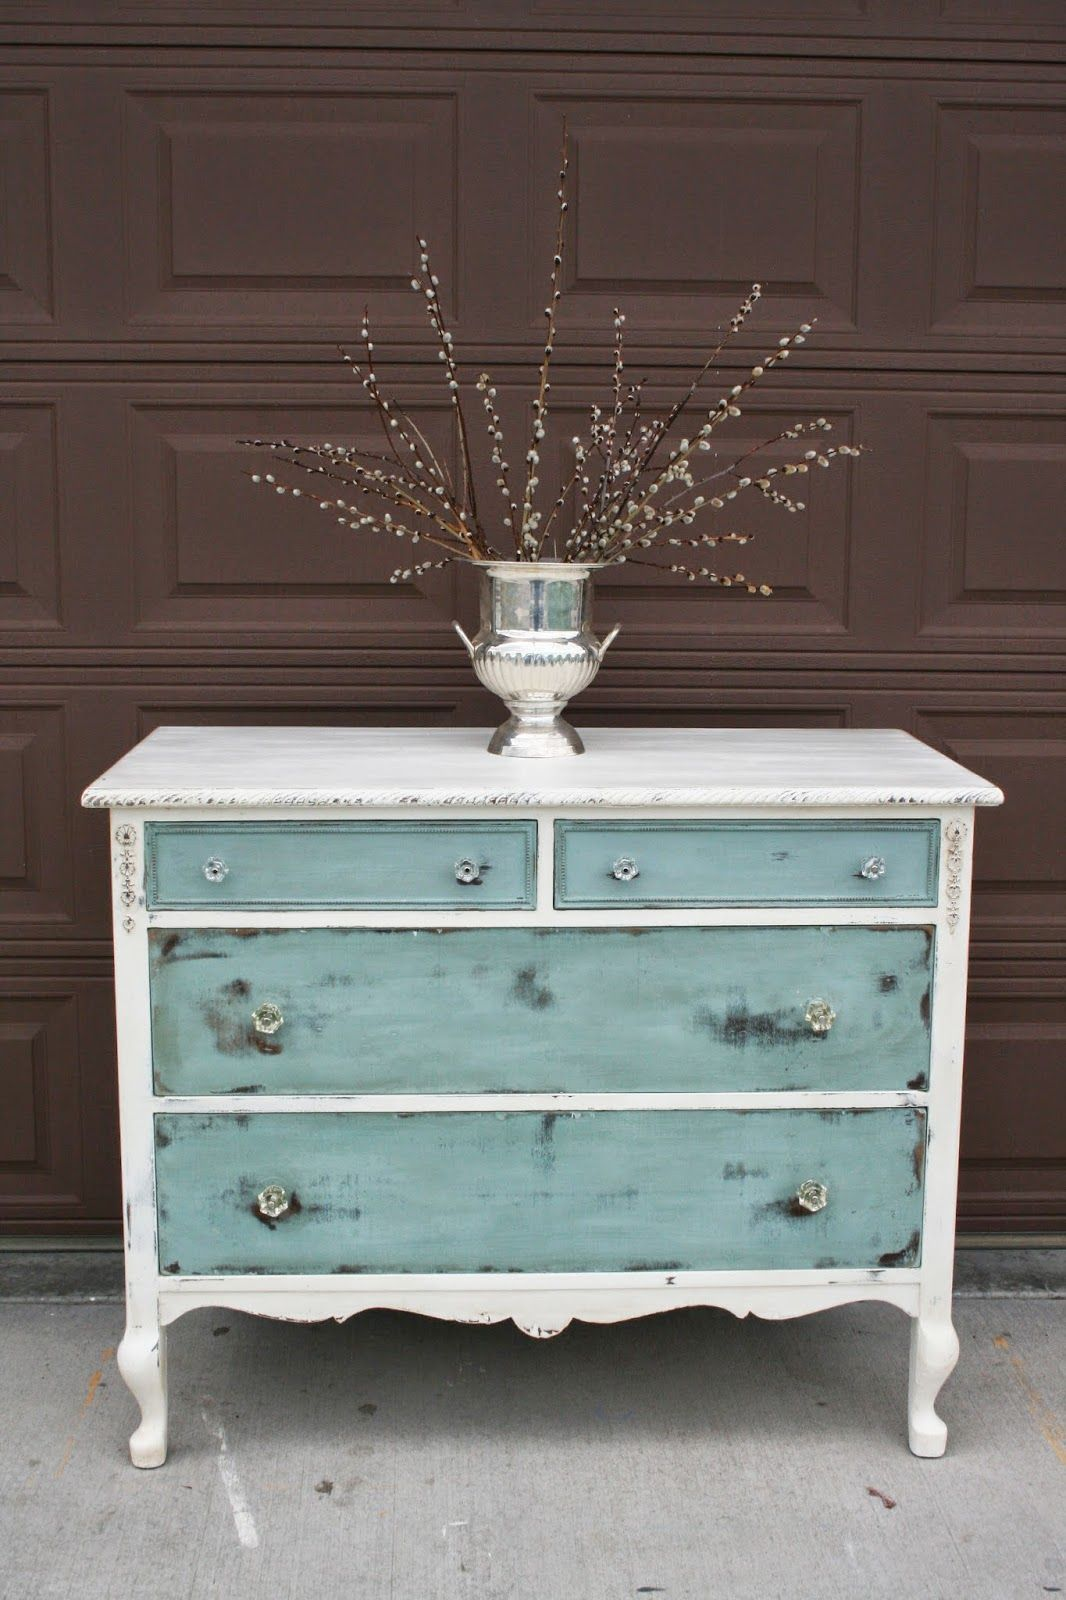 Antique Dresser Makeover For Storage Rustic Country Bathroom